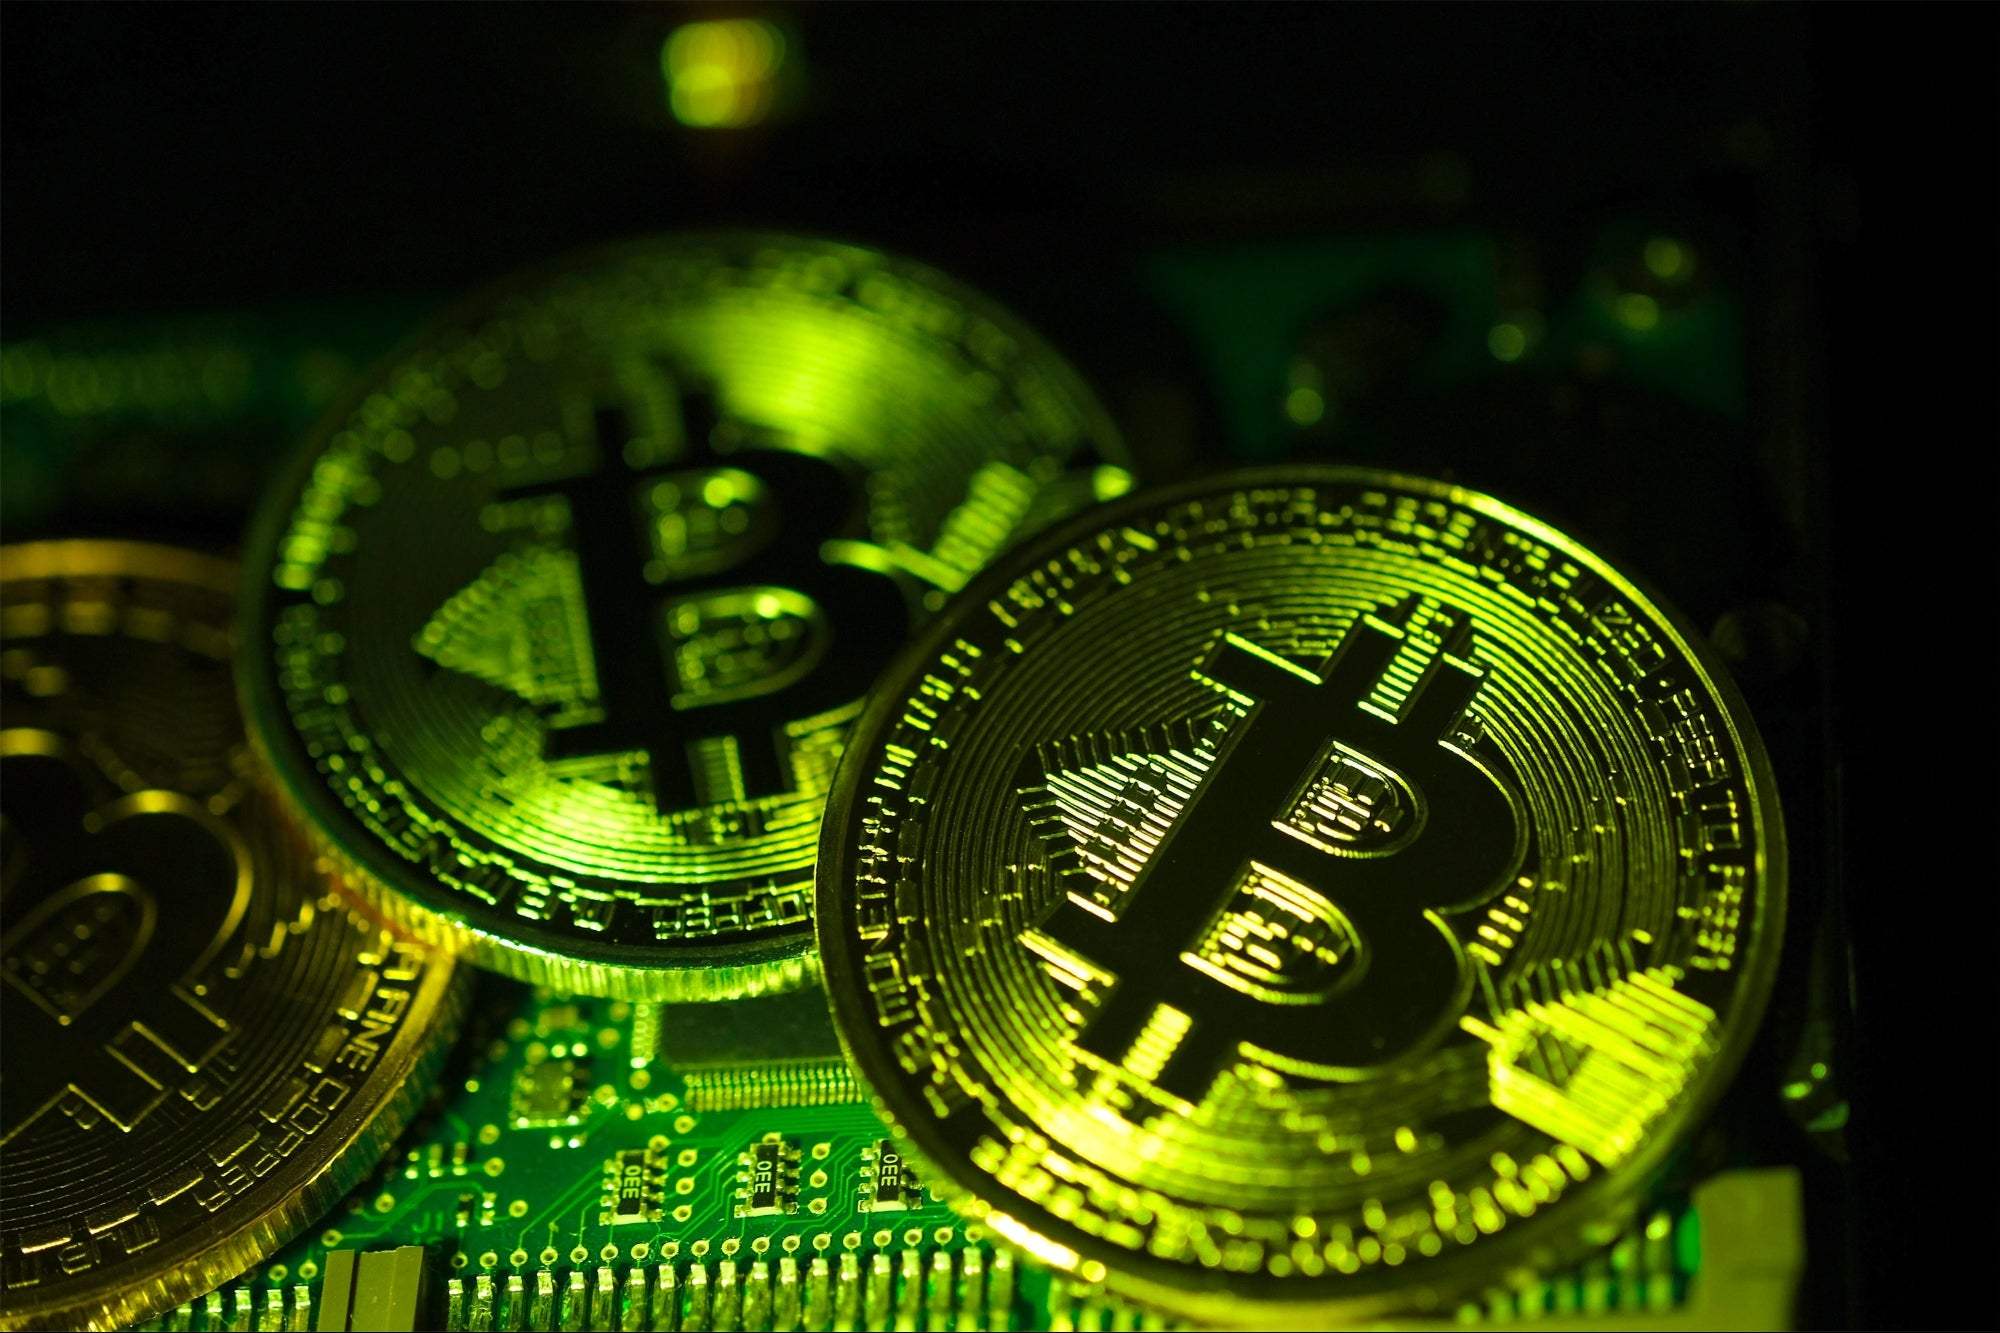 Image of article 'The Crypto Market Is Now Worth More Than $1 Trillion for the First Time as Bitcoin Hits Record Above $38,000'